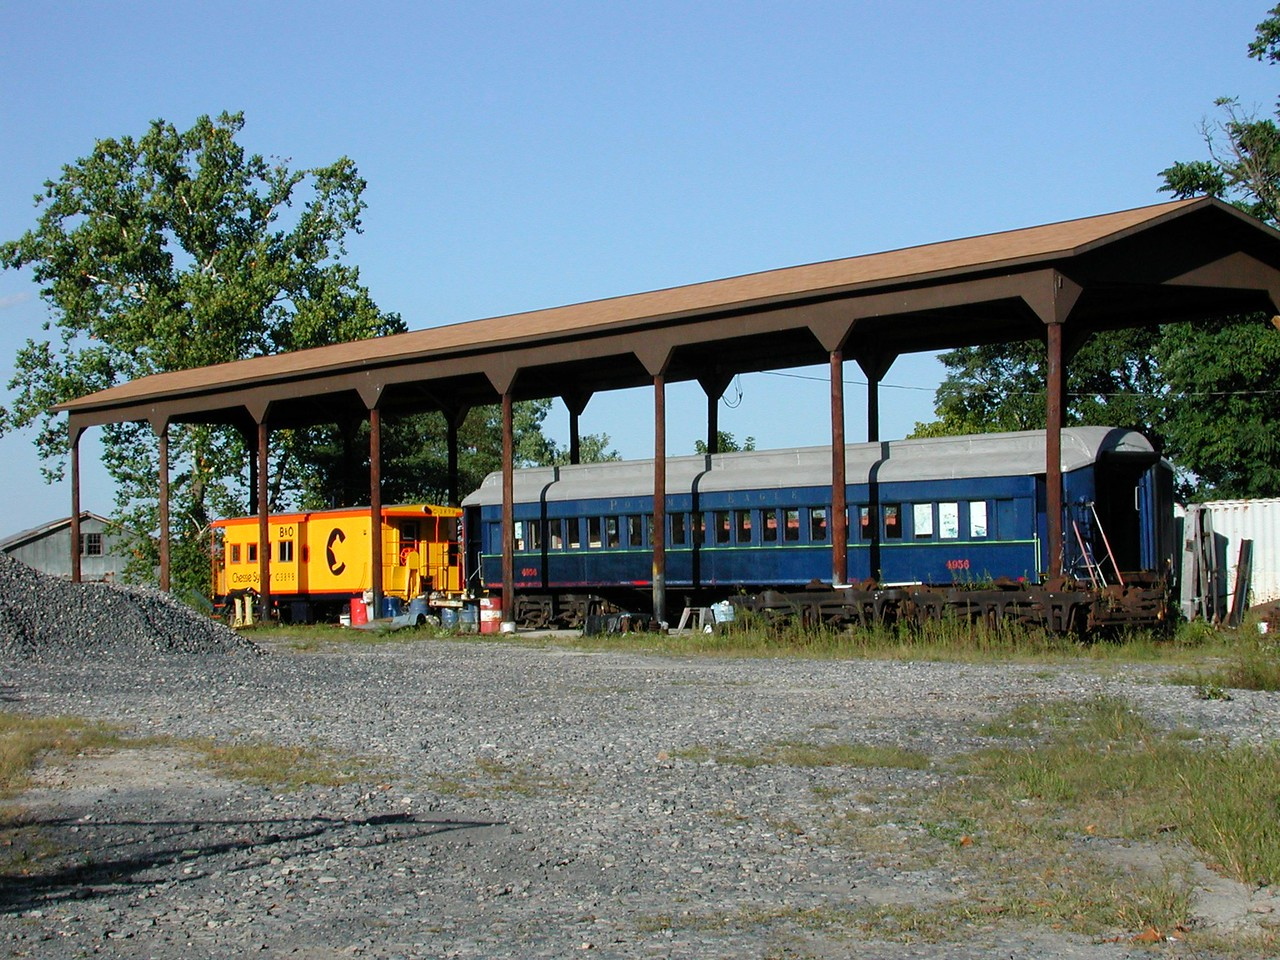 Outside of Romney, appears this scene. I can't say much about the trains in this image, but the sign clearly mentioned it was State owned property.